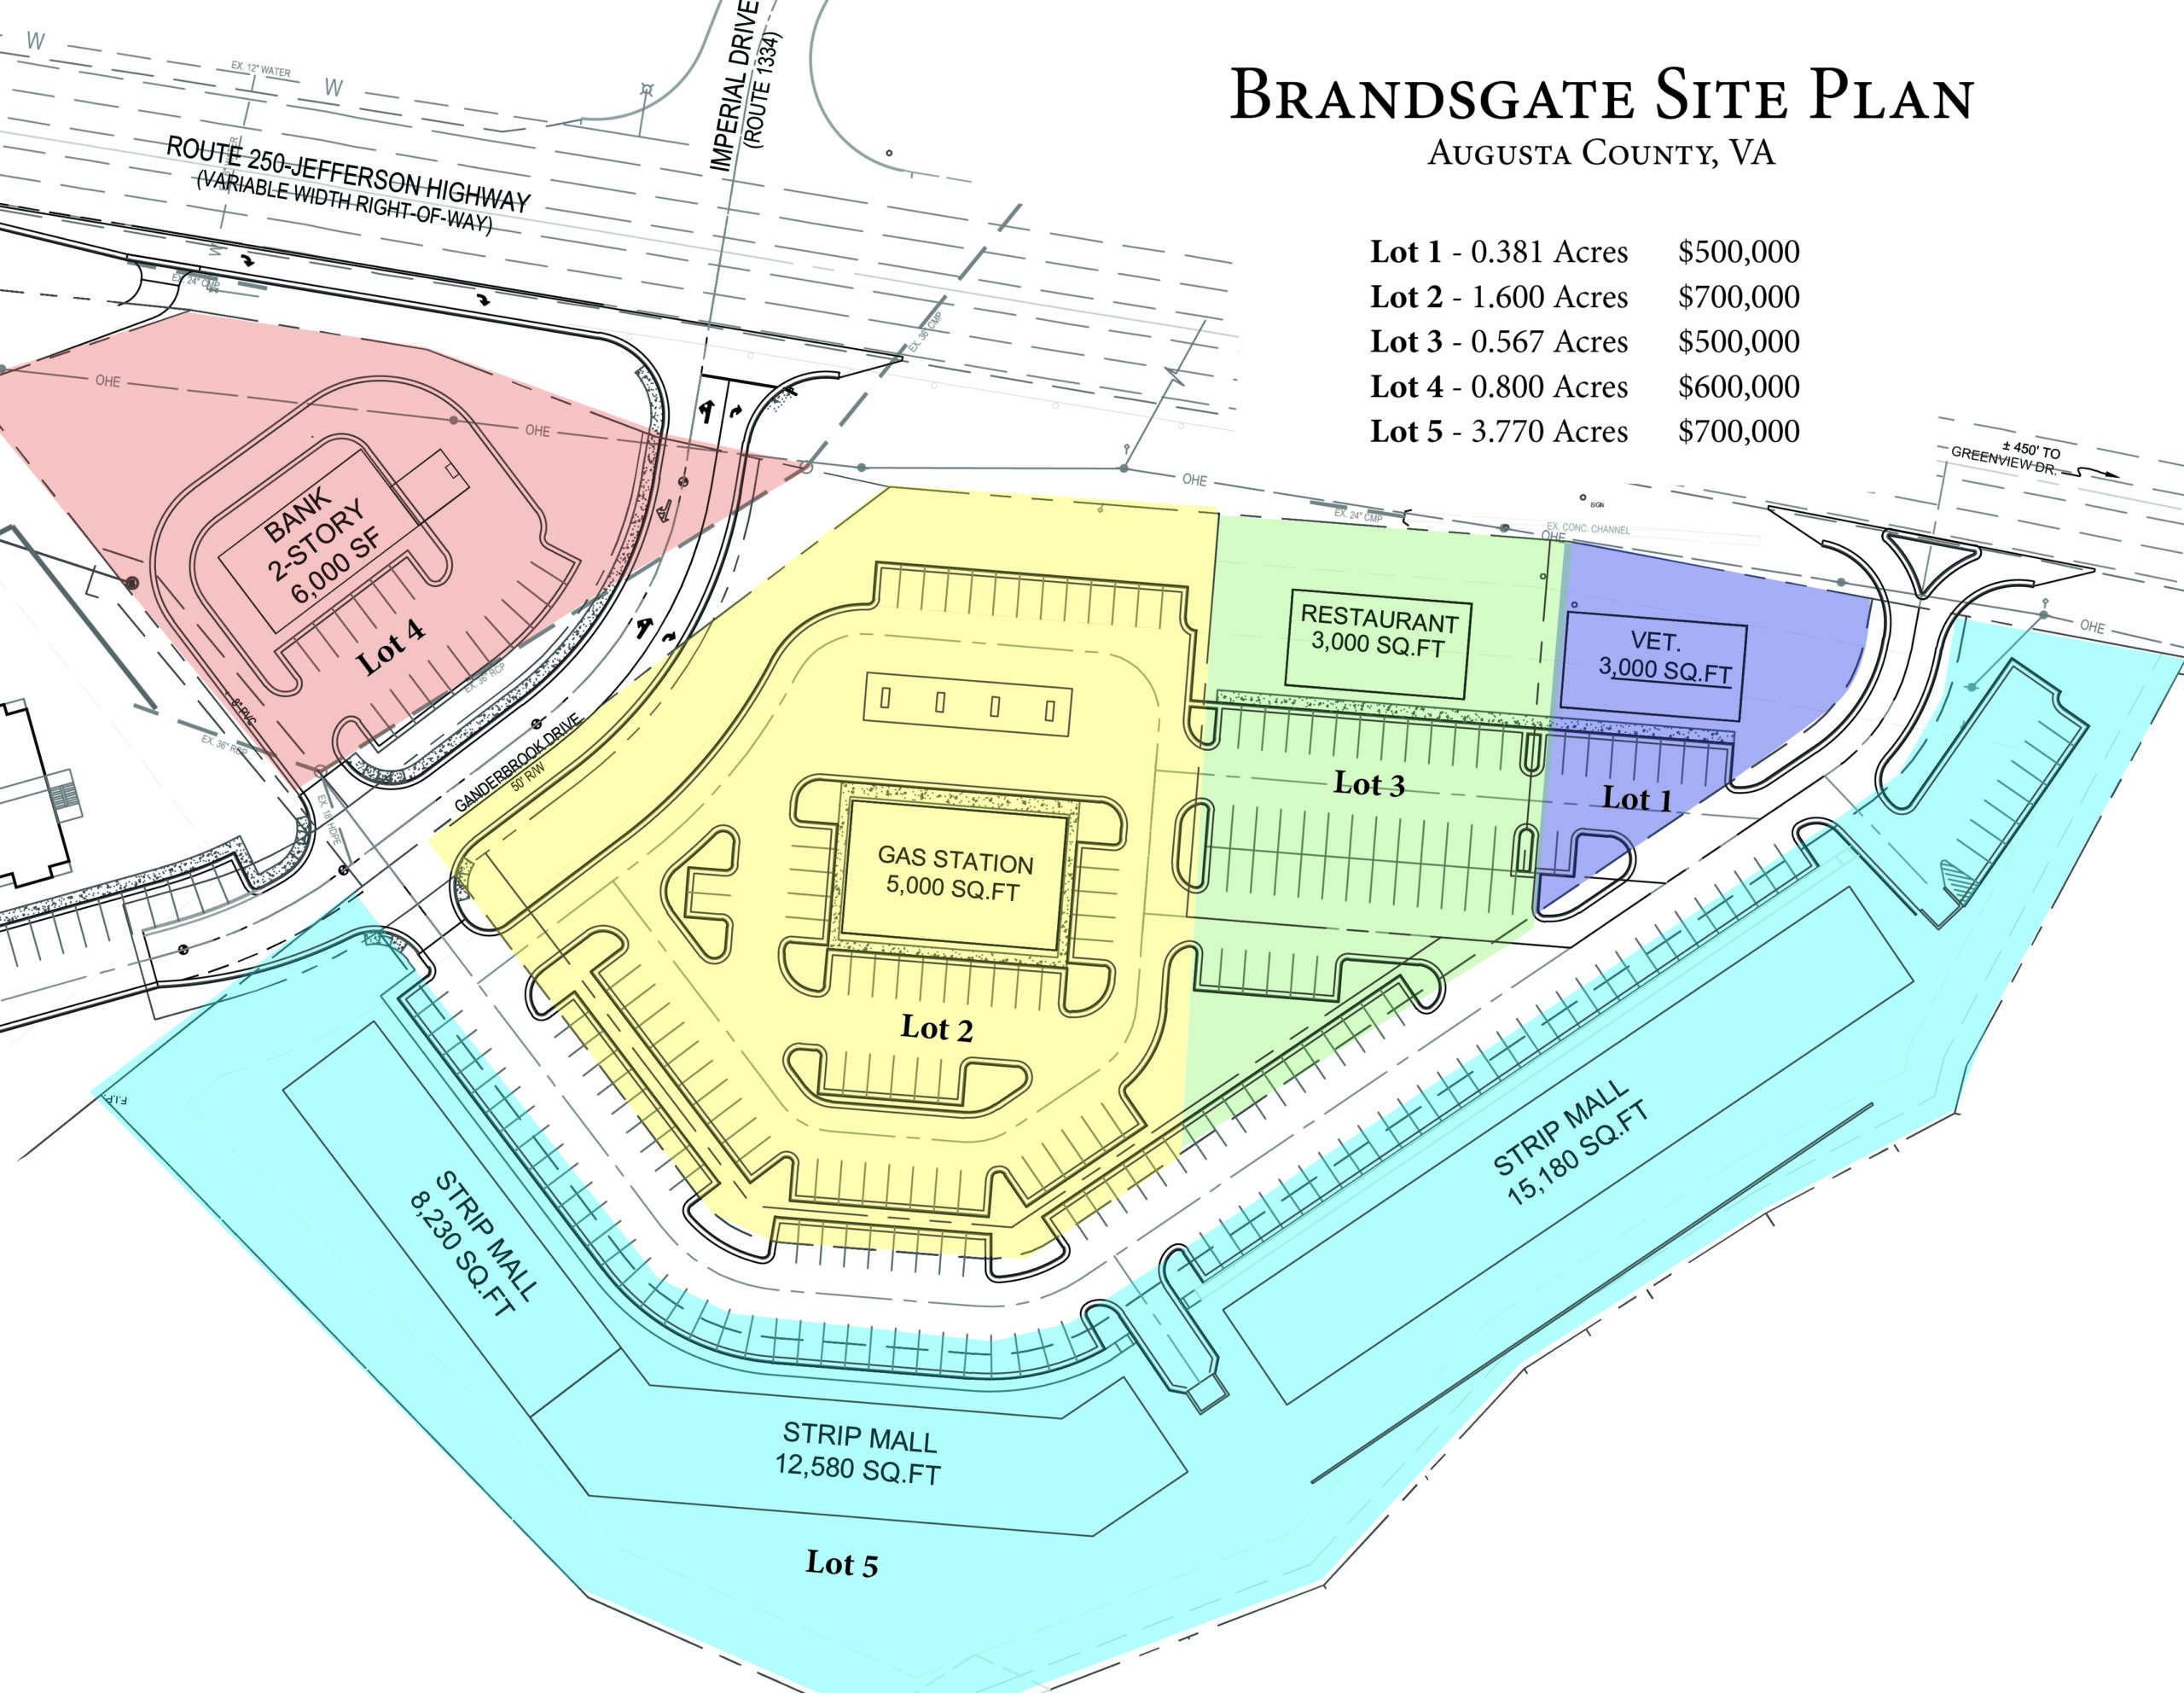 Commercial Land for Strip Mall